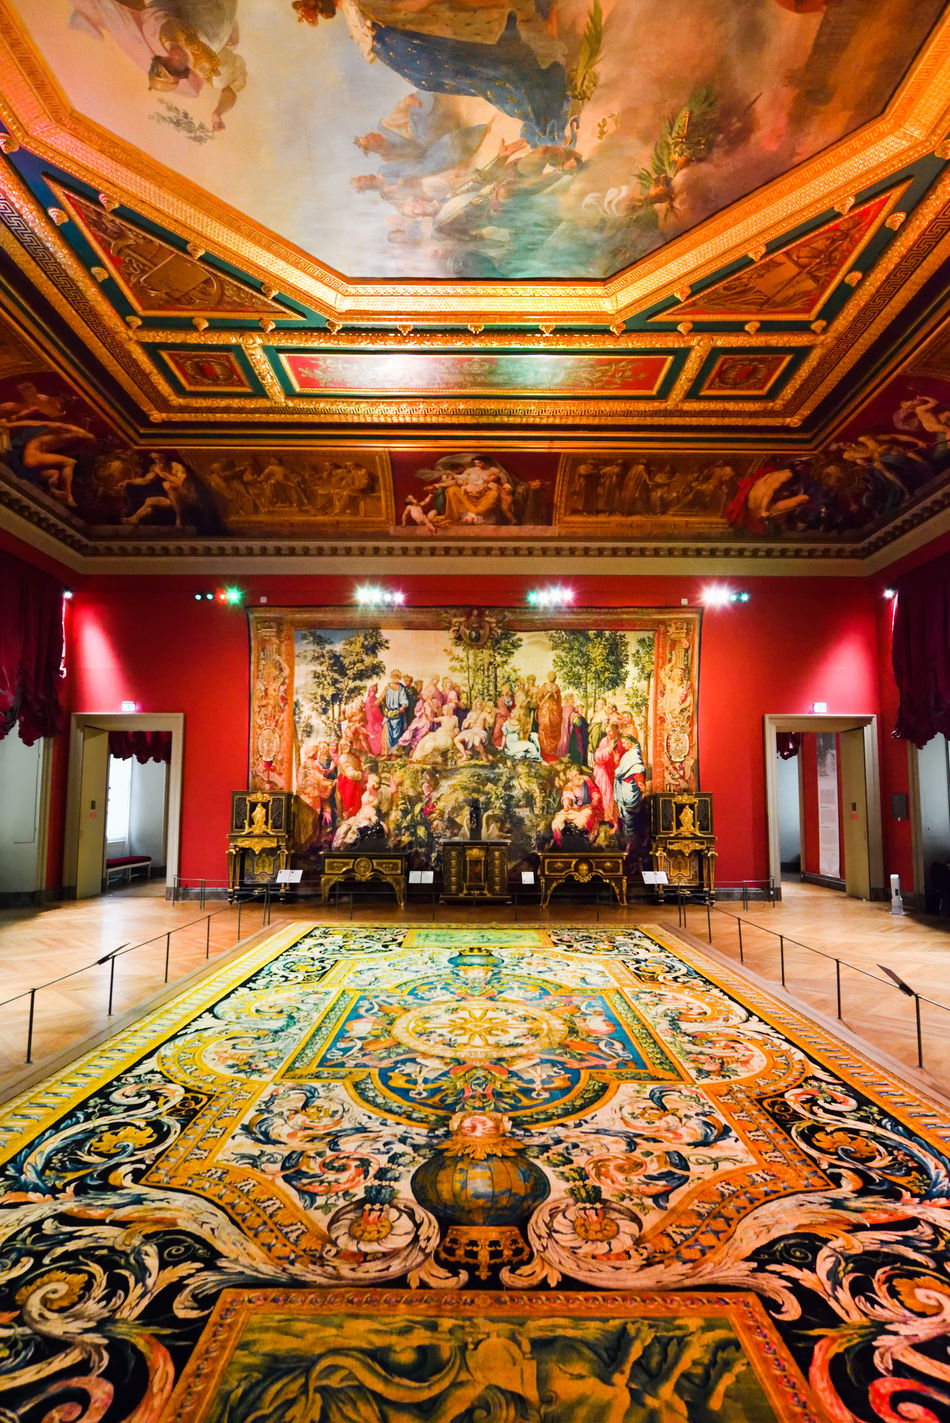 In The Louvre: Tapestries and Painting In The Napolean III Apartments Architecture Architecture Ceiling Floor France Indoor Louvre Luxury Museum Napolean Iii Apartments No People Opulance Opulent Painting Paris Rich Riches Royal Royalty Tapestry Travel Wealth Interior